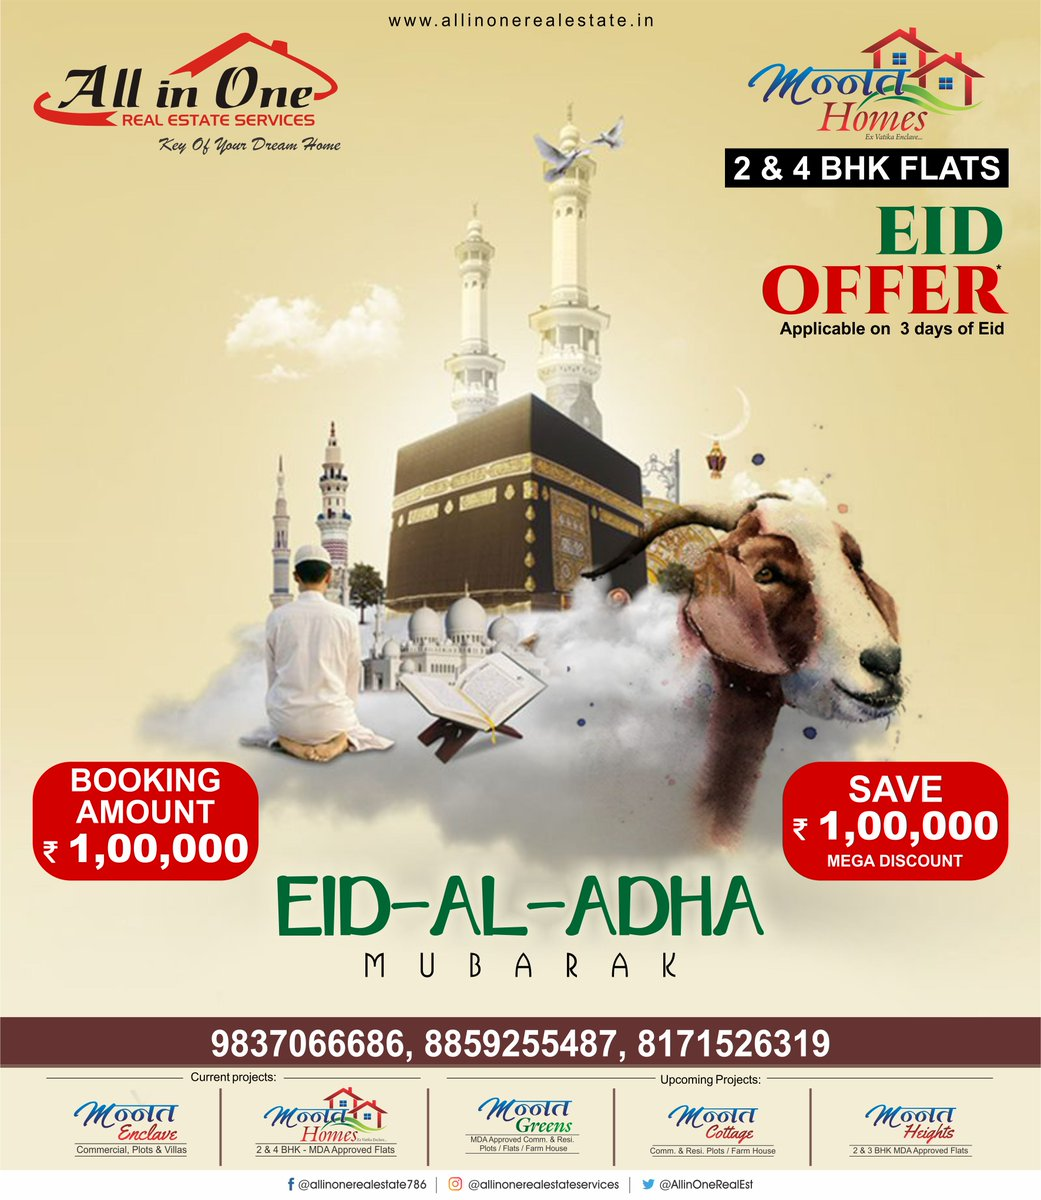 All In One Real Estate Services  EID - Al - Adha  Eid Offer (Mannat Homes) Flats 2 & 4 BHK 1,00,000* Discount on 1,00,000 Booking  Hurry Up! Applicable on 3 days of Eid  #EidMubarak #eidaladha #Bakraeid #EidOffer #EidDiscount #offer #Flat #MannatHomes #MannatProperties https://t.co/Ukoh1c9XEC